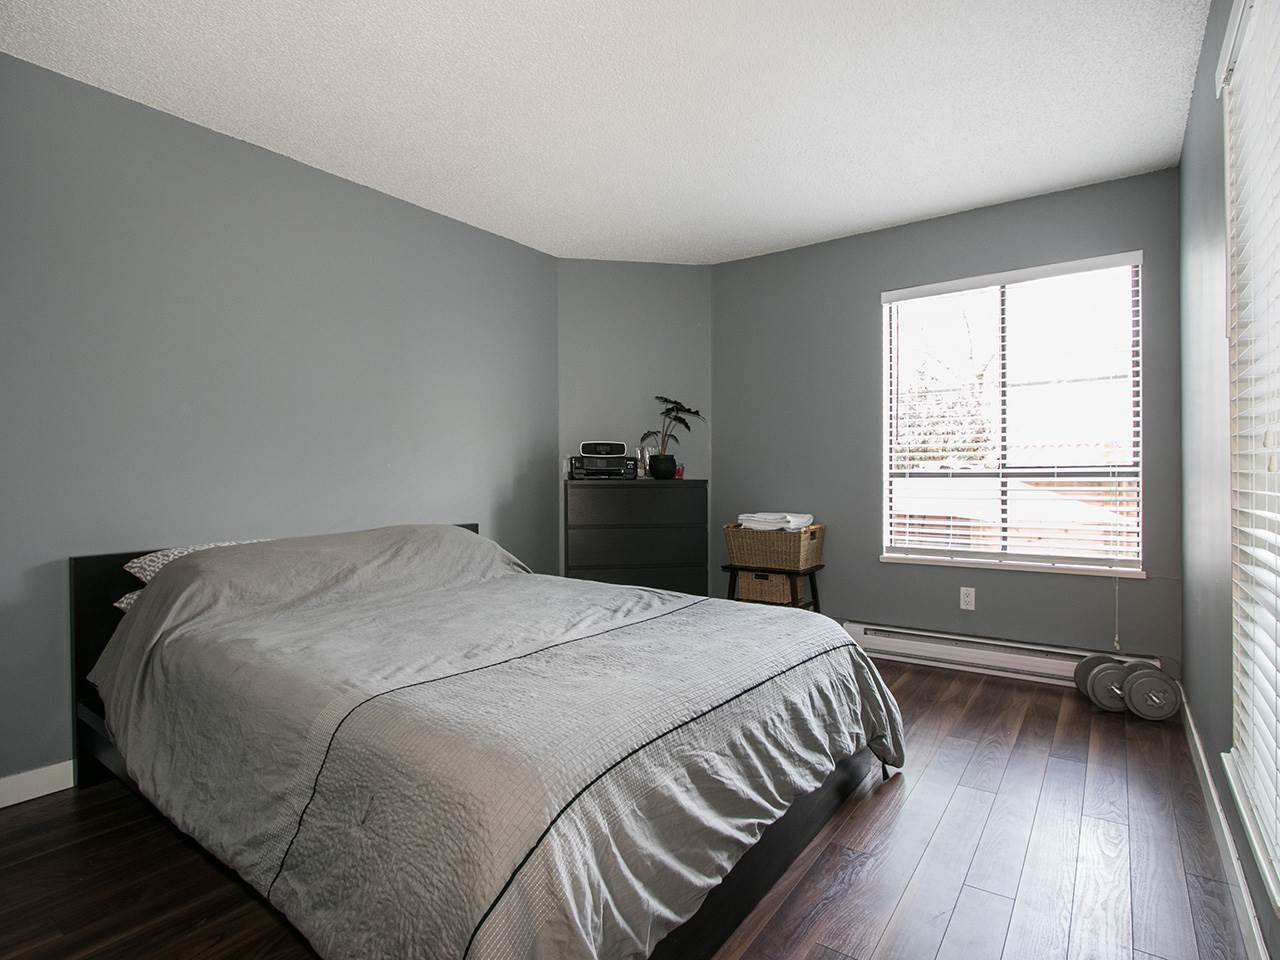 Photo 12: 101 1775 W 10TH AVENUE in Vancouver: Fairview VW Condo for sale (Vancouver West)  : MLS(r) # R2038742